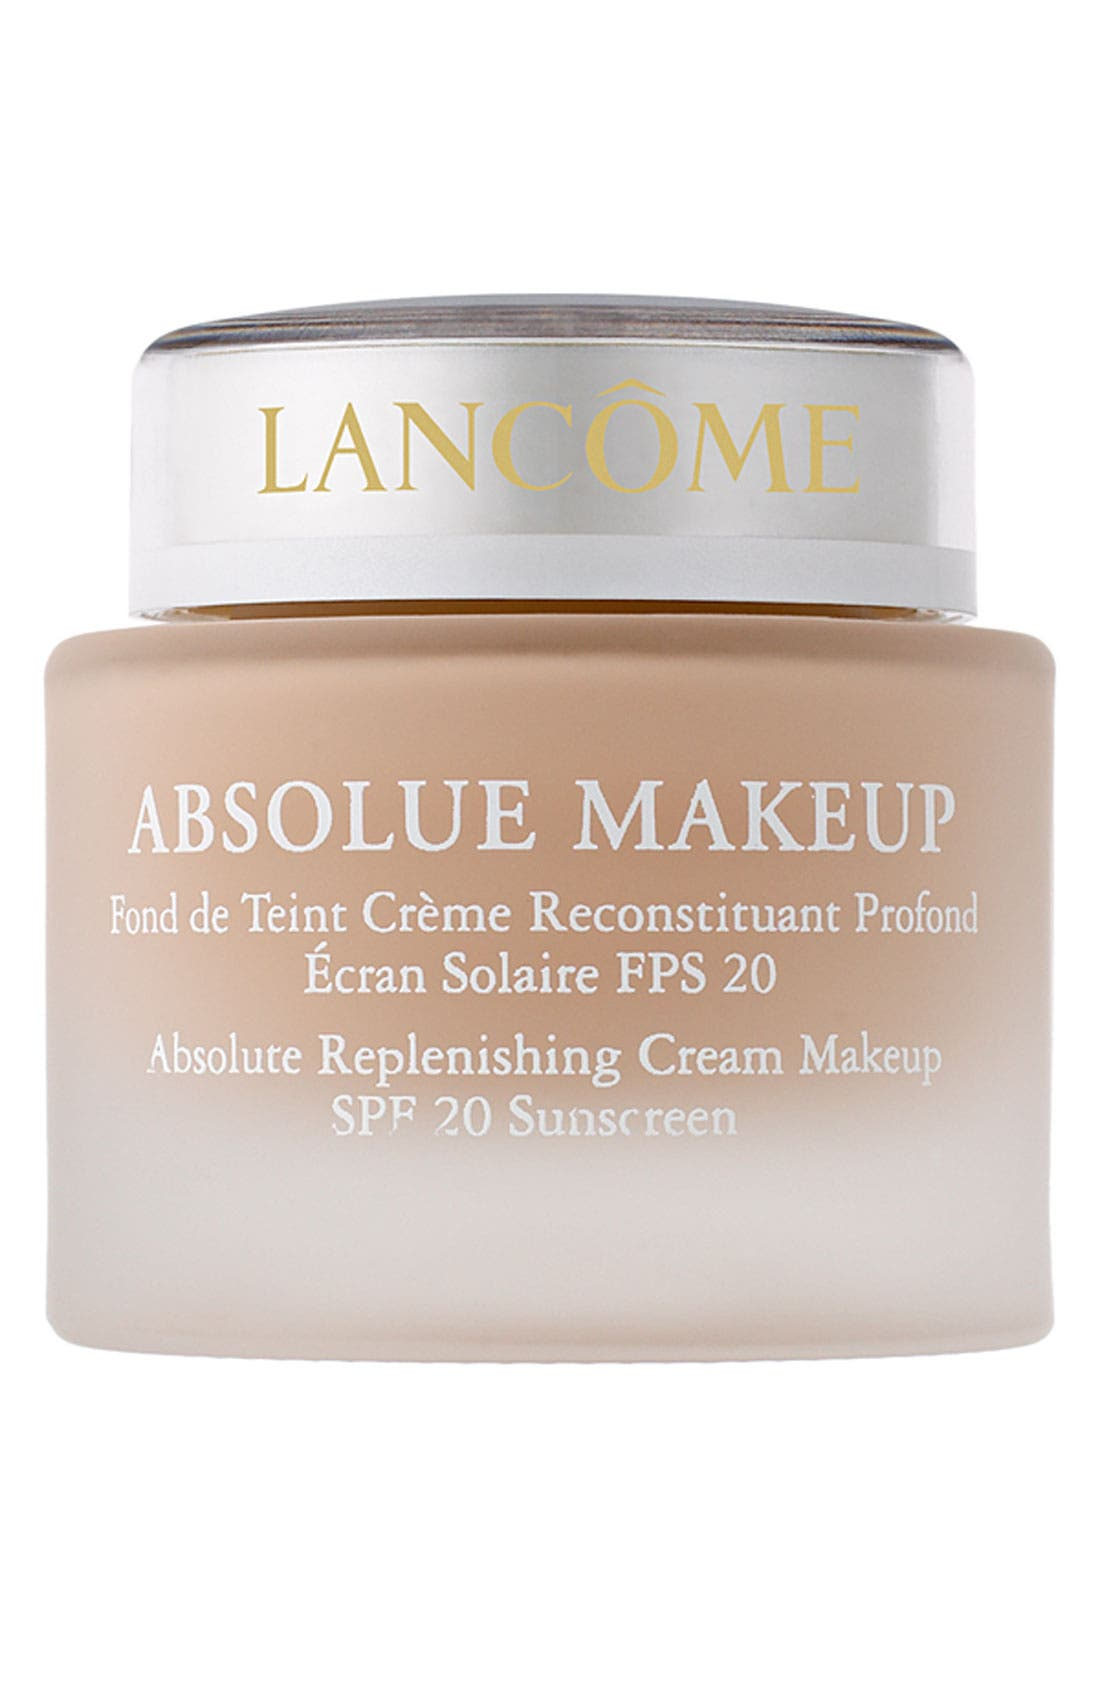 Absolue Replenishing Cream Makeup SPF 20,                             Main thumbnail 1, color,                             ABSOLUTE ECRU 20 (C)